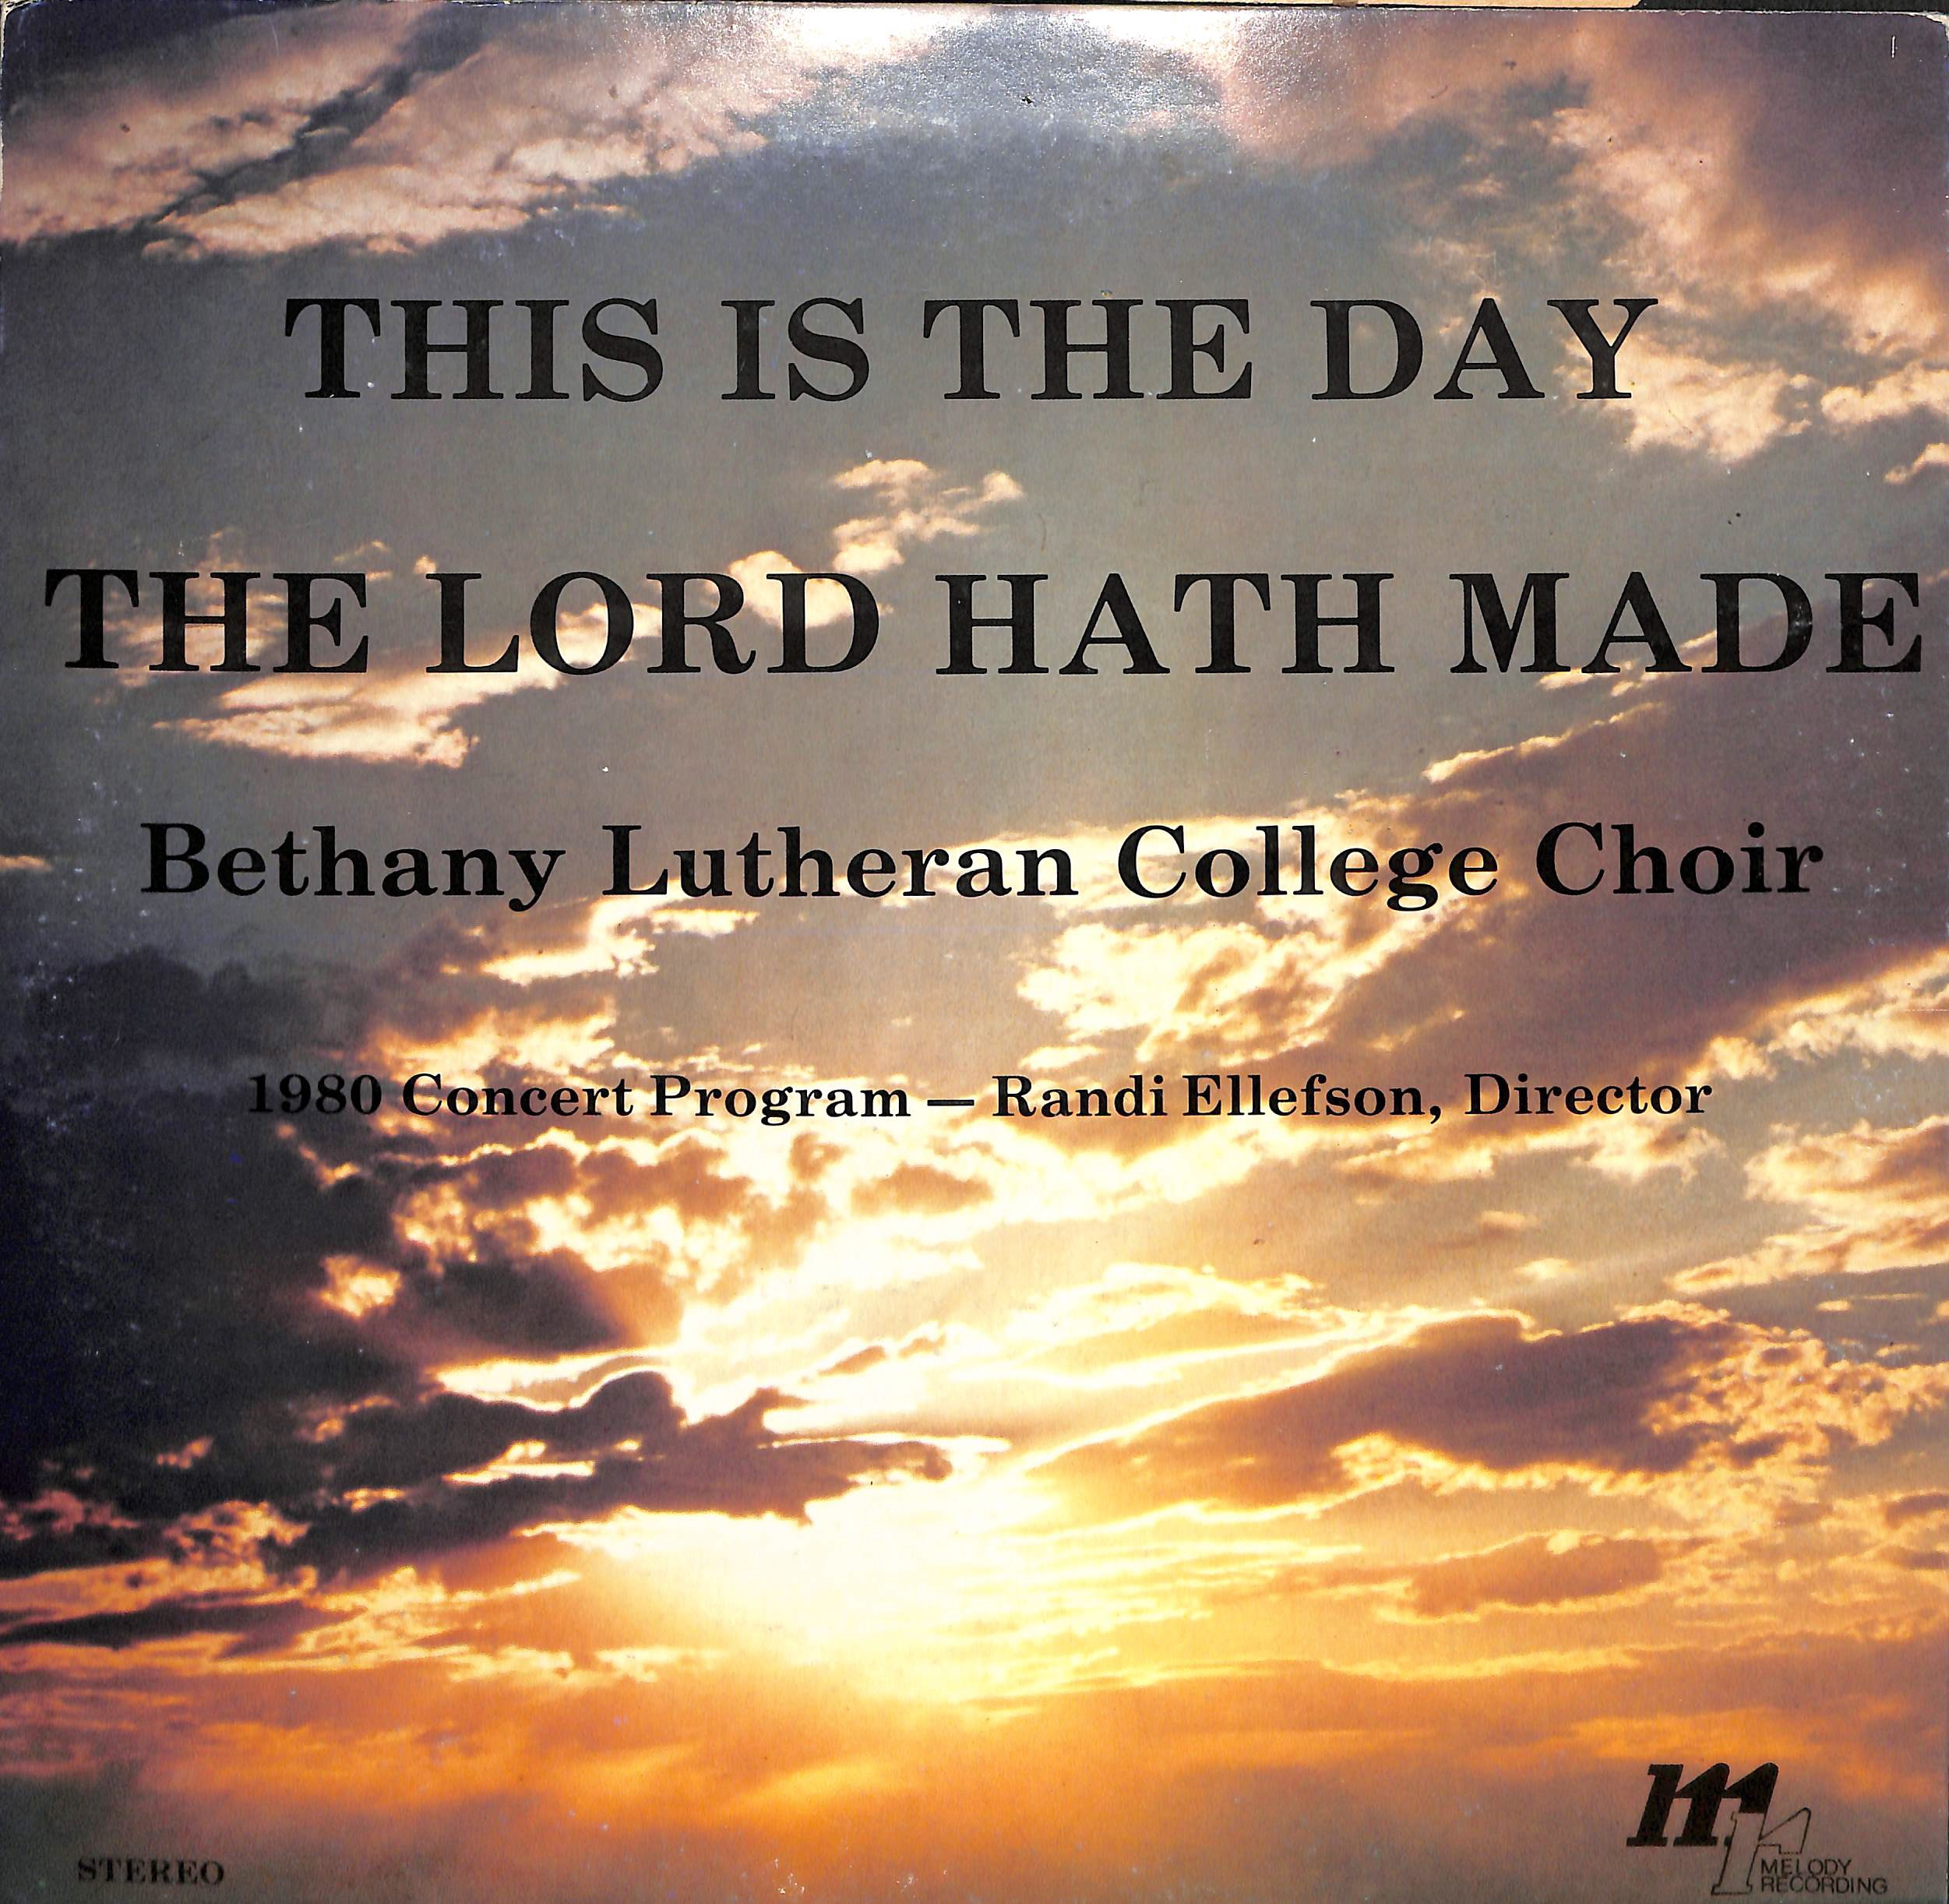 The Bethany Lutheran College Choir 1980: This is the Day the Lord Hath Made